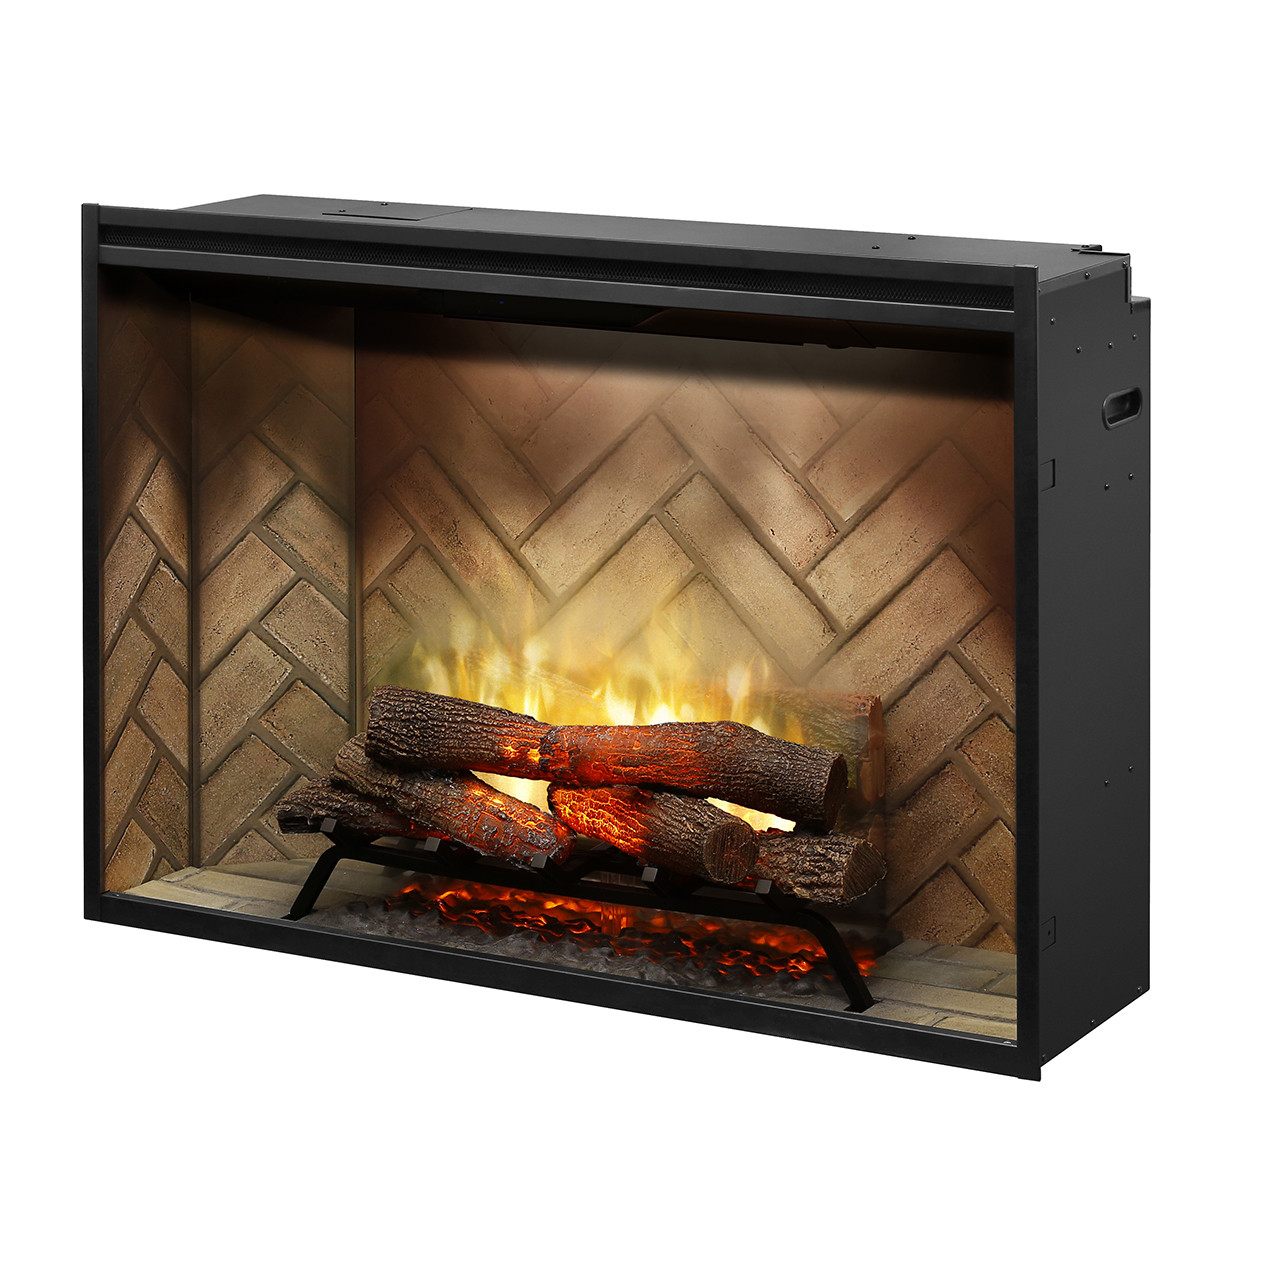 "RBF42 Dimplex Revillusion® 42"" Built-in Electric Firebox"